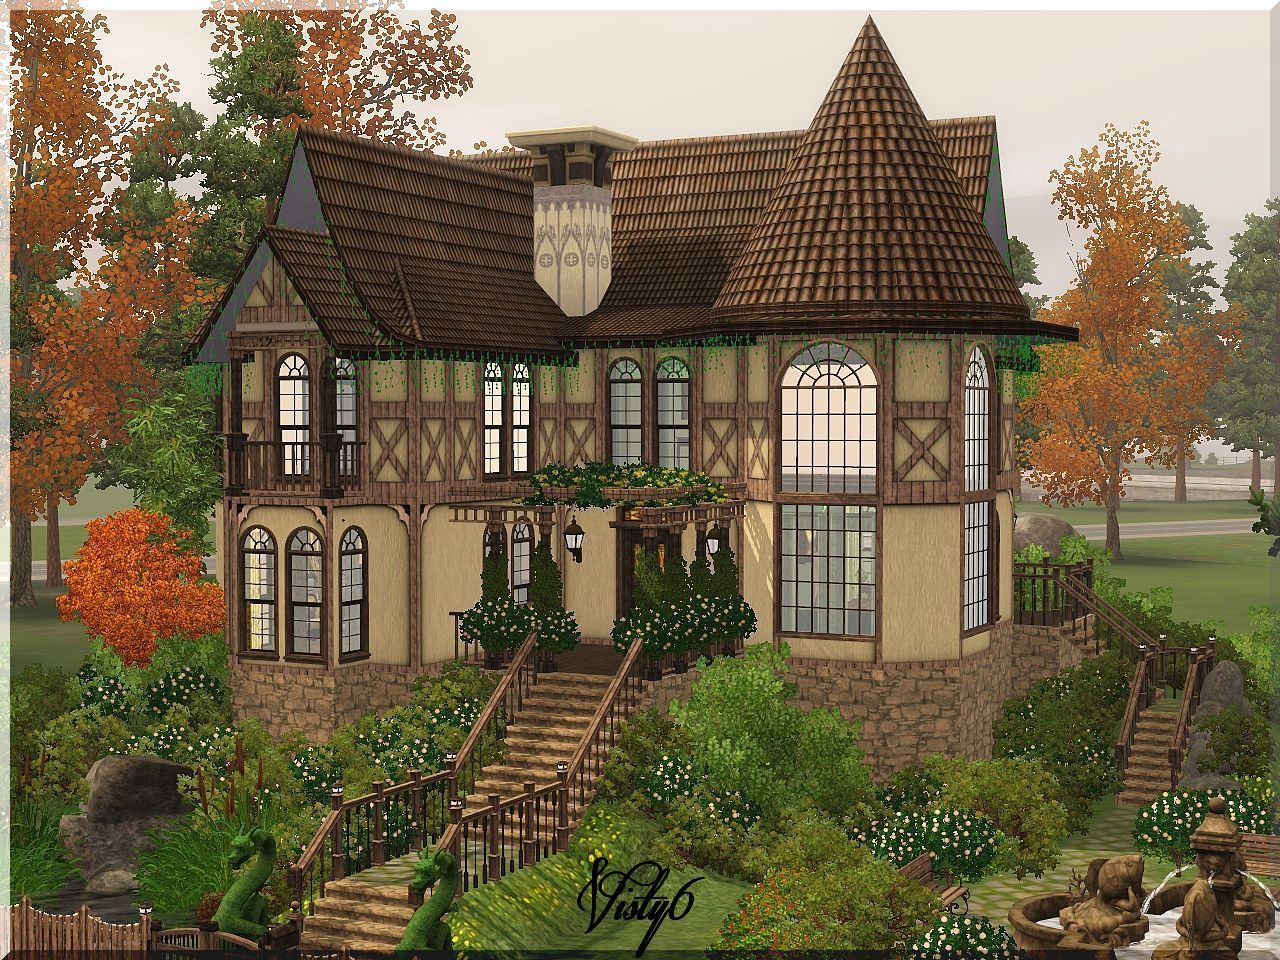 Visty6 Victorian House 2 Sims House Sims House Plans Victorian Homes